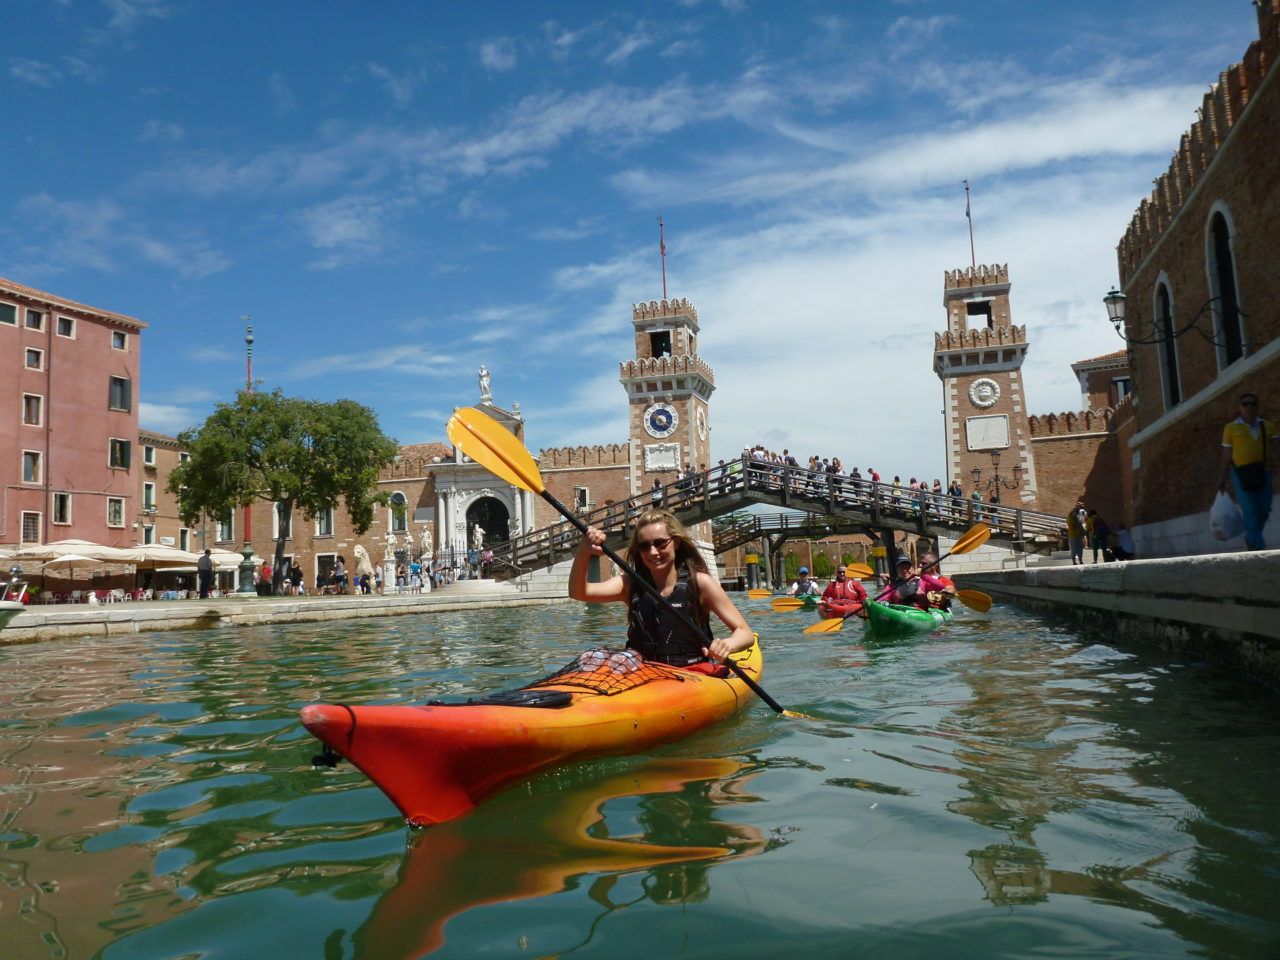 Kayaking in Venice - a unique experience - Venice Kayak